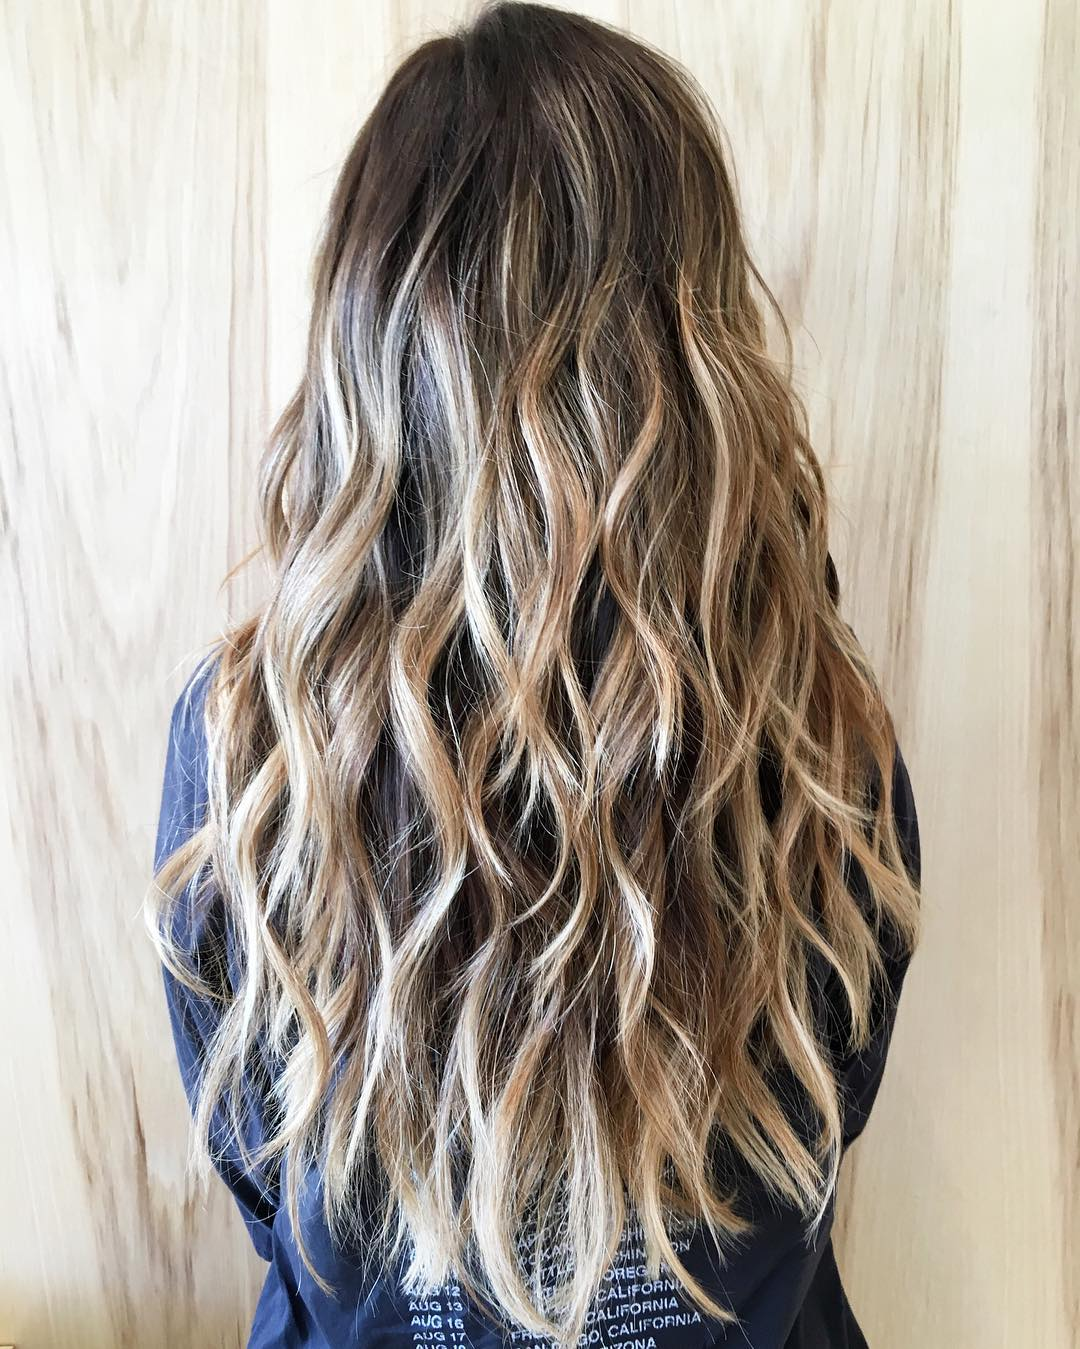 Wavy Choppy Blonde Hairstyle for Long Hair